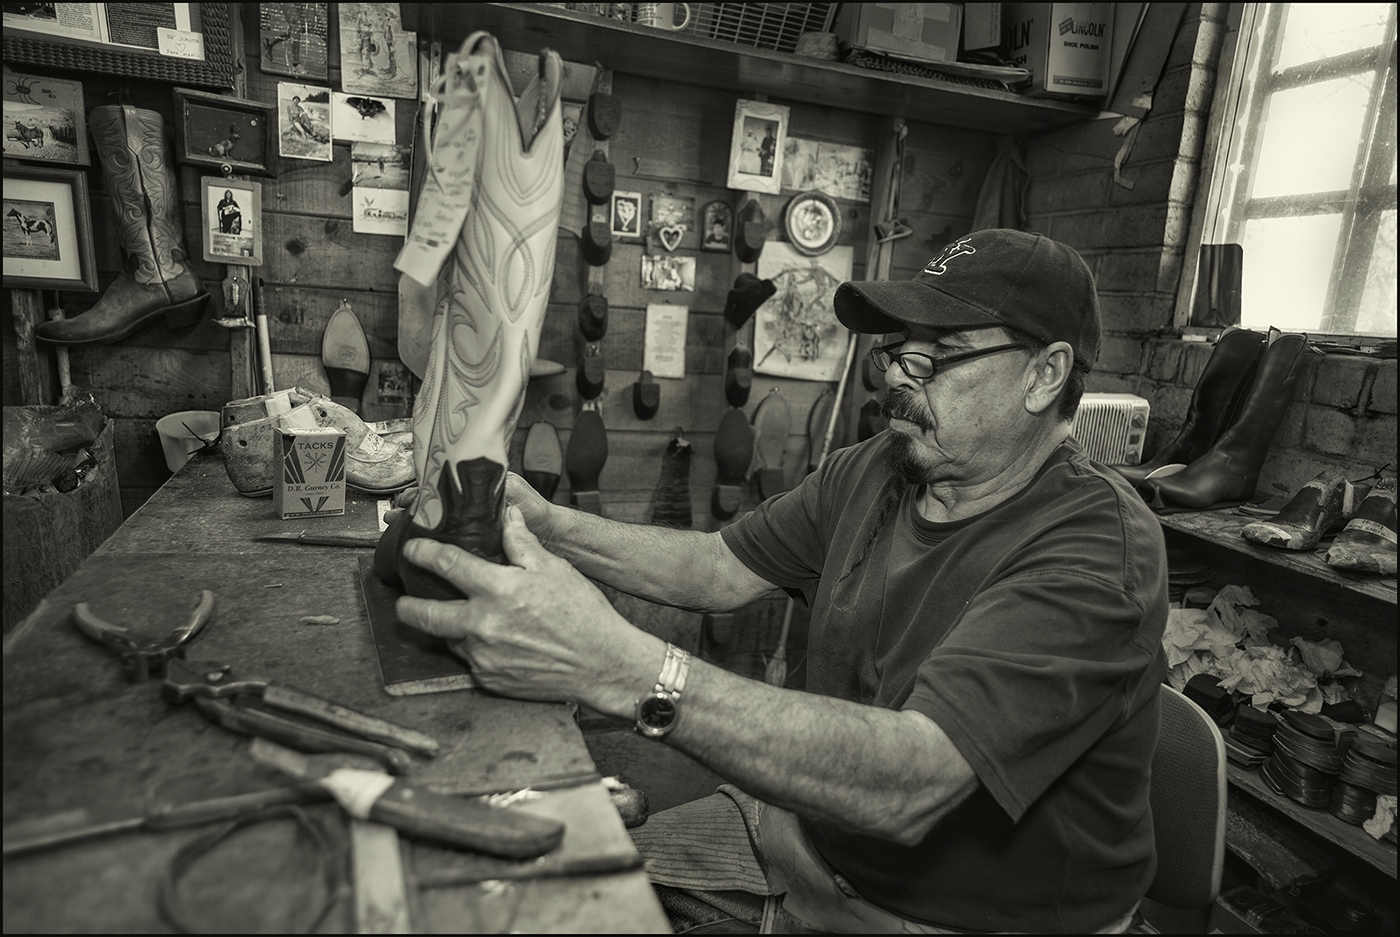 Marcial Gonzales Parra, master craftsman building a custom boot. Paul Bond Boot Company, Nogales, Arizona. Marcial has been making boots for 35-years. March 2019.